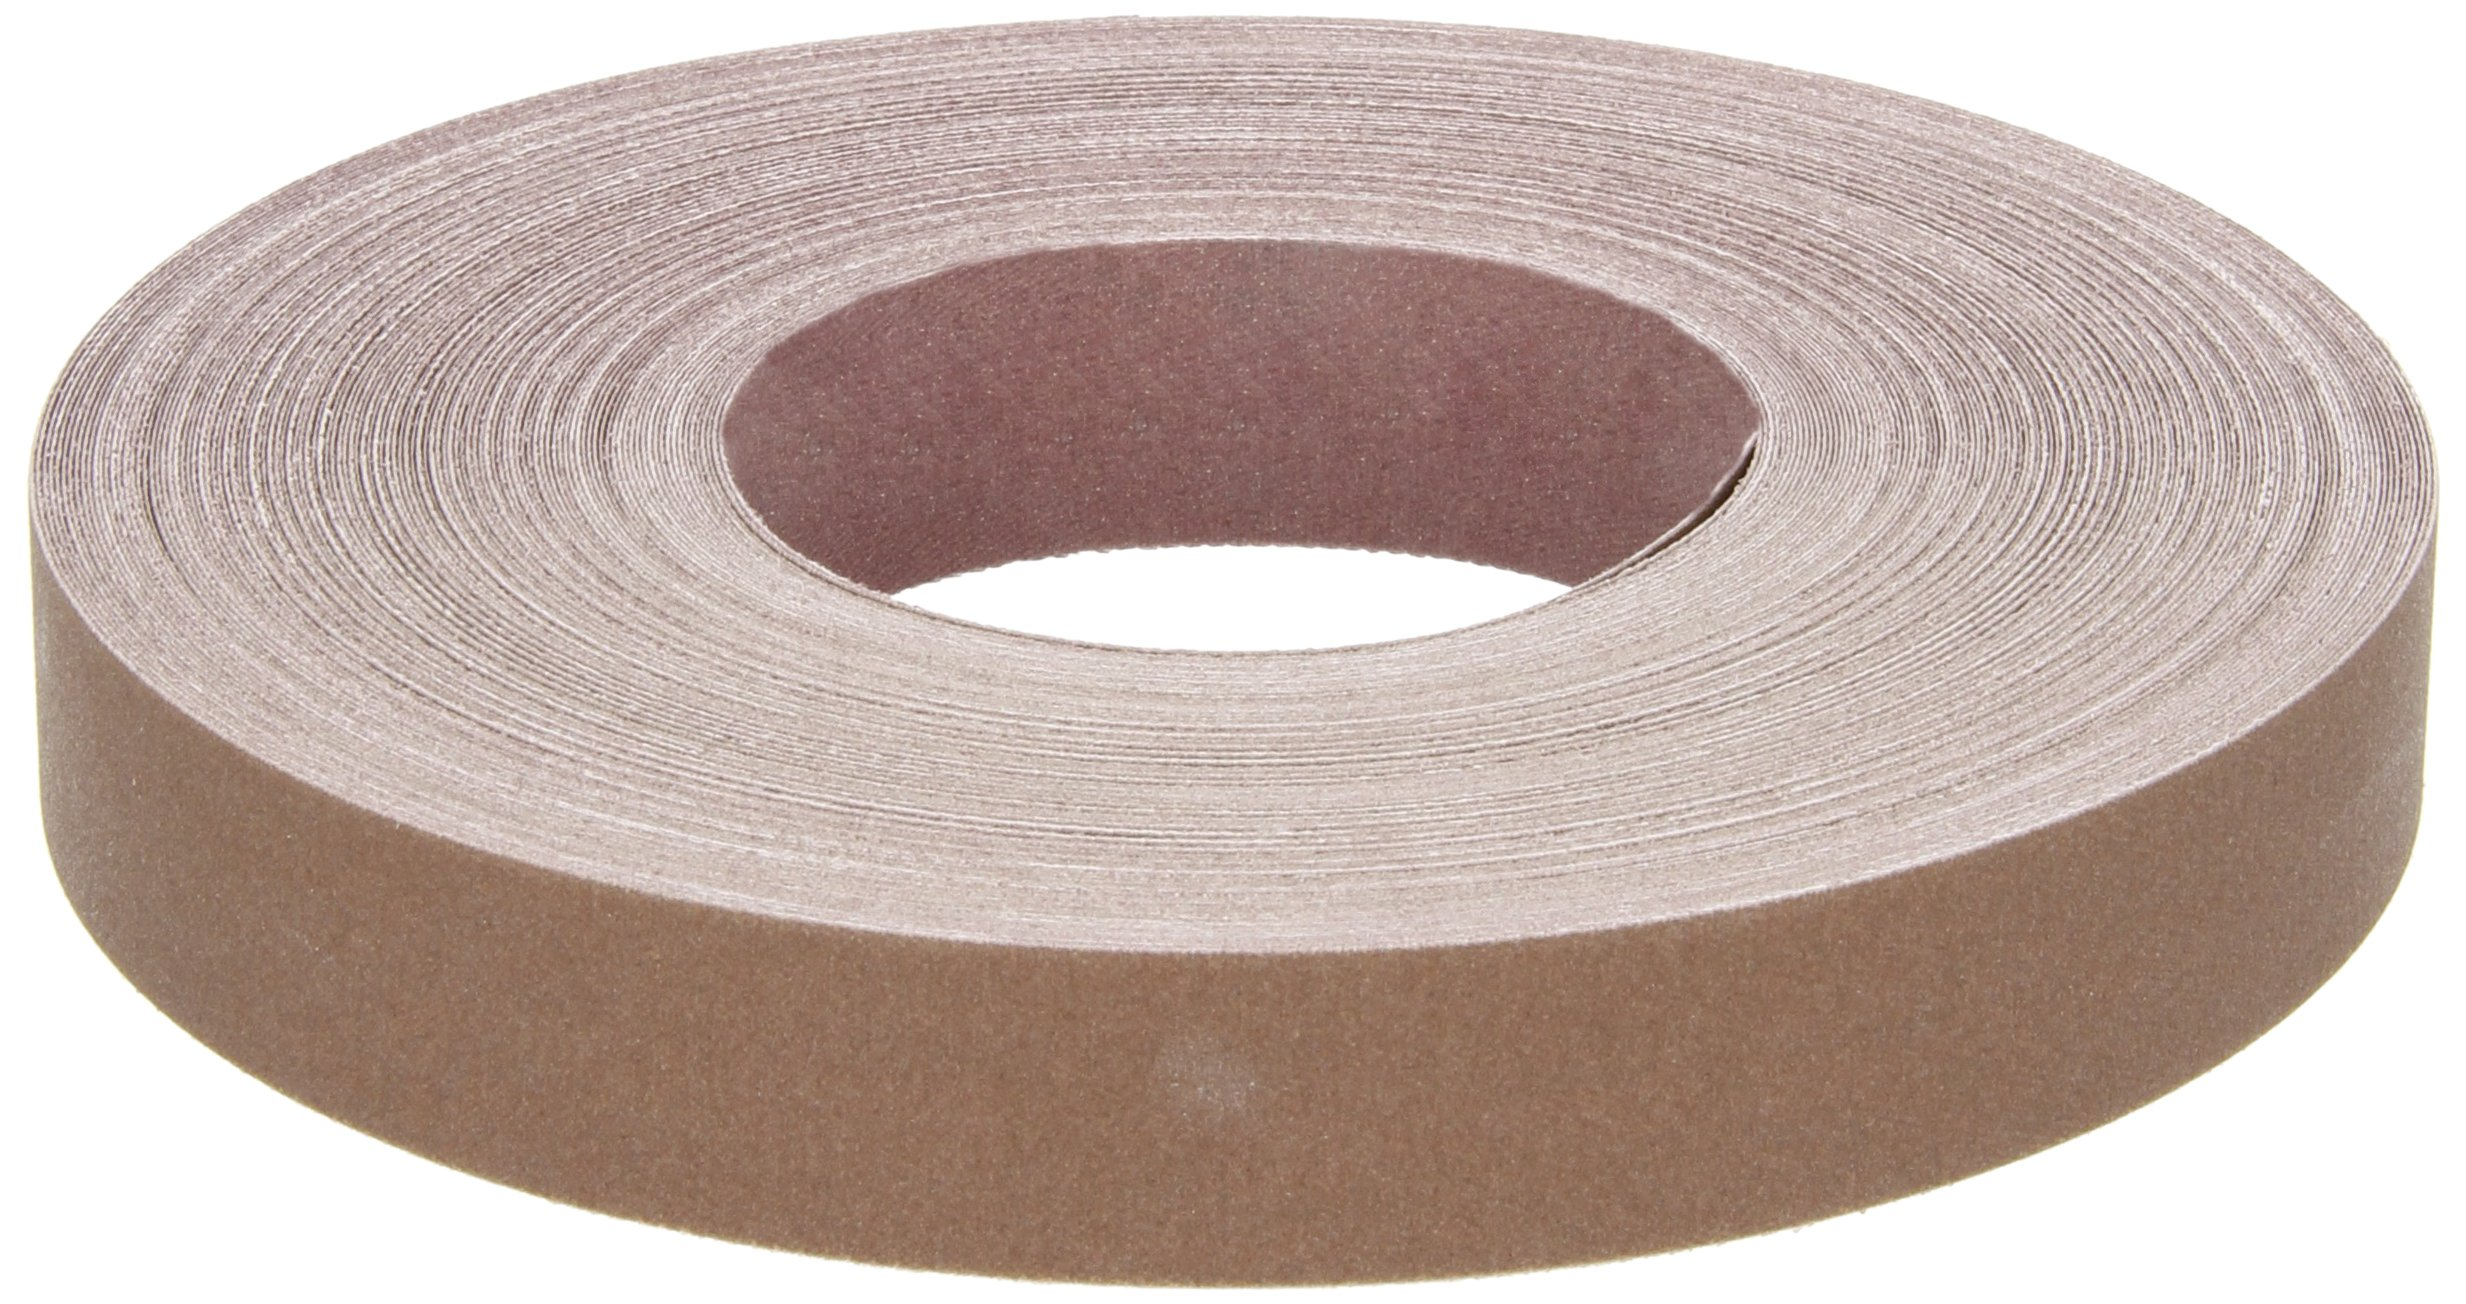 Norton K225 Metalite Abrasive Roll, Cloth Backing, Aluminum Oxide, 1'' Width x 50yd Length, Grit P320 (Pack of 5) by Norton Abrasives - St. Gobain (Image #1)